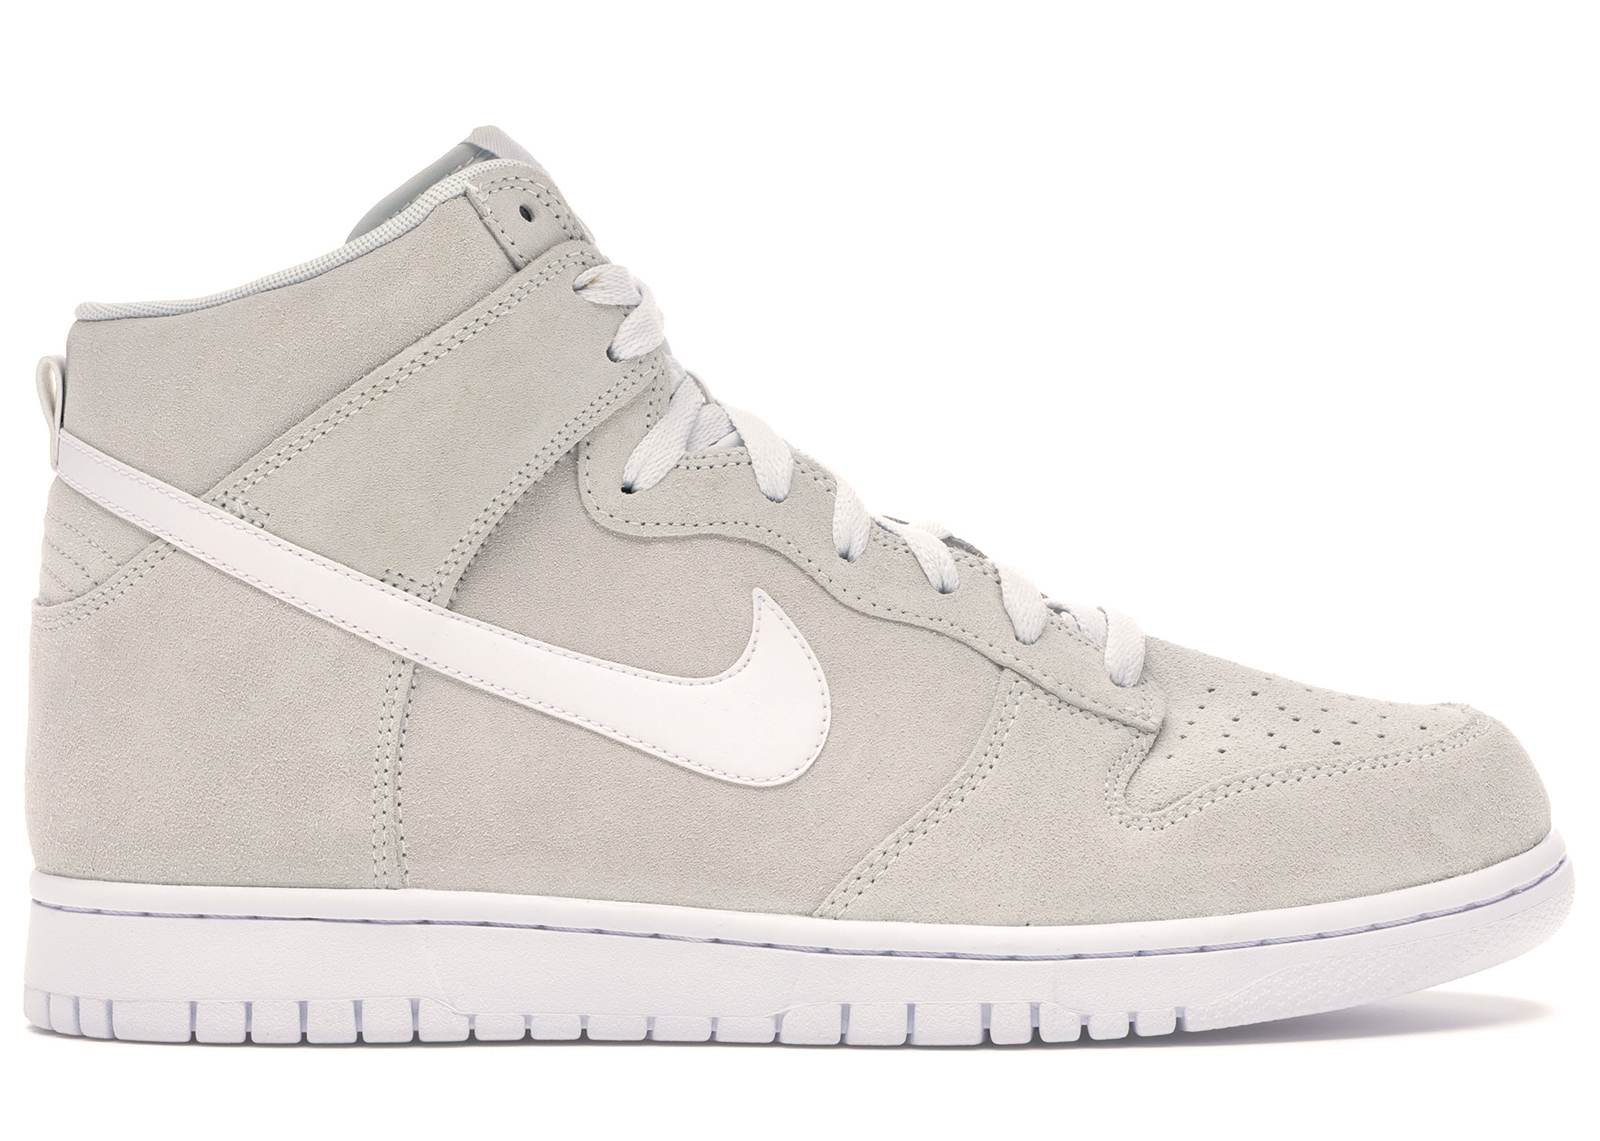 Nike Dunk High Suede Off White - 904233-100